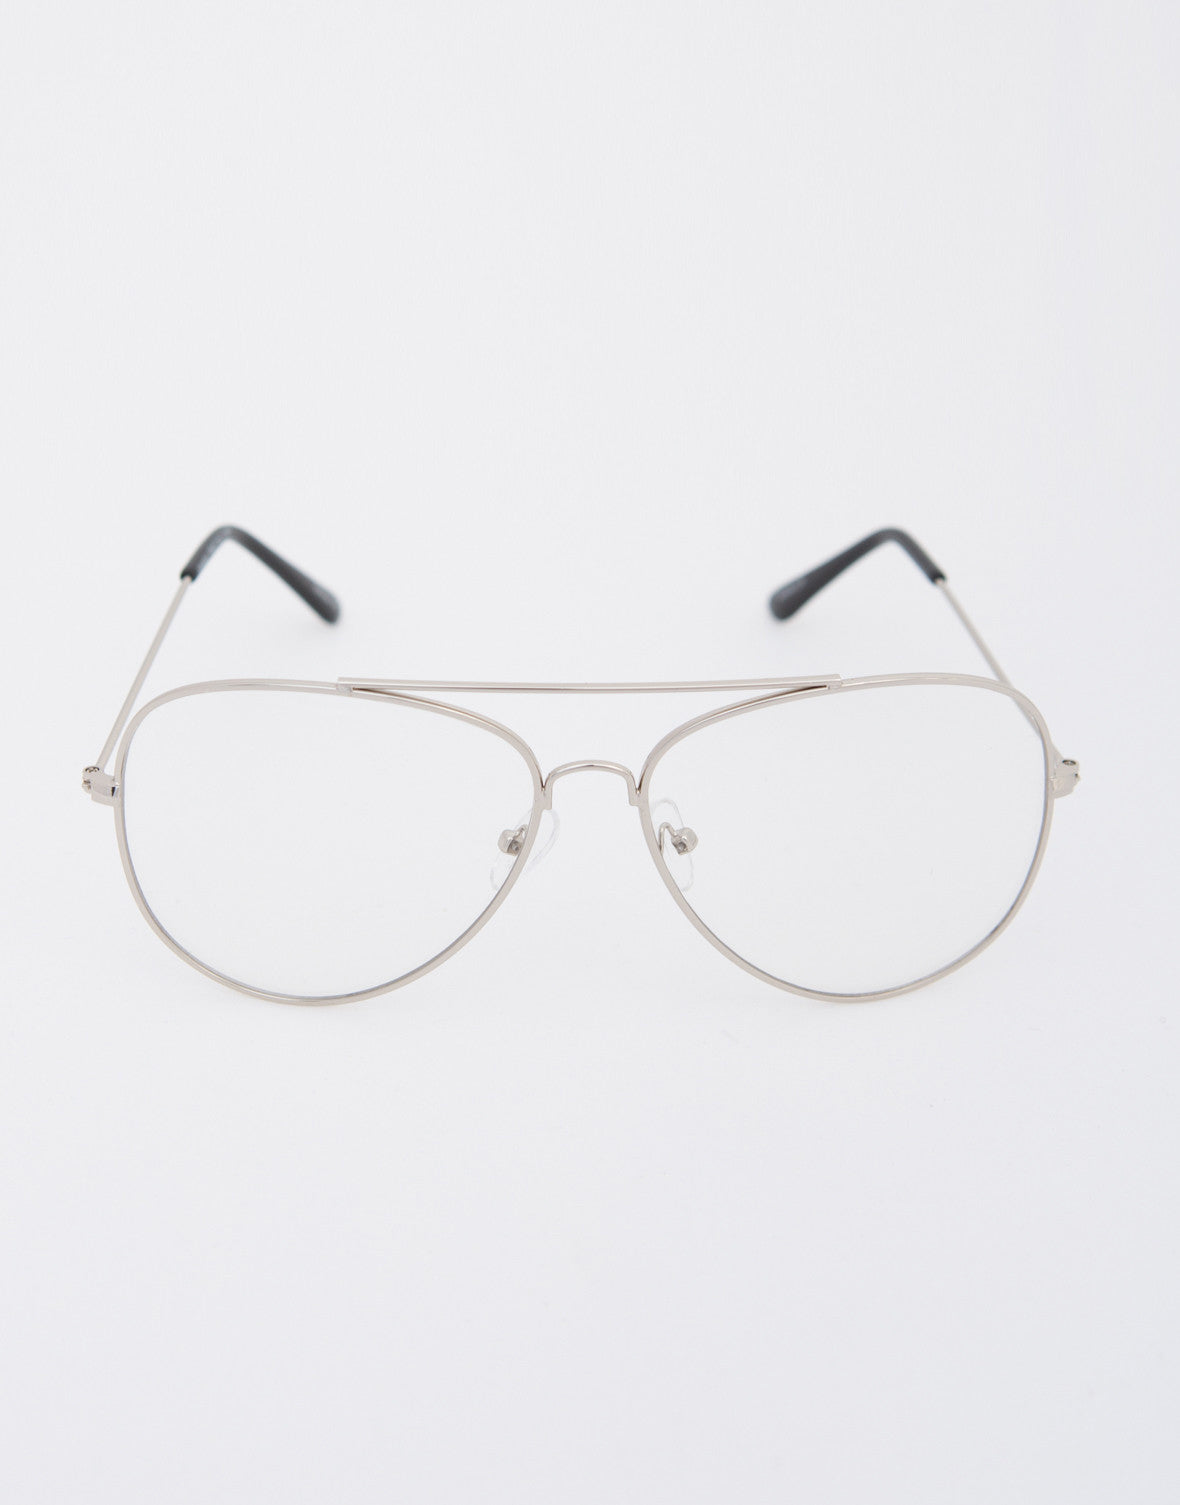 3dd9c13ad27 Aviator Clear Glasses - Clear Oversized Glasses - Aviator Glasses ...